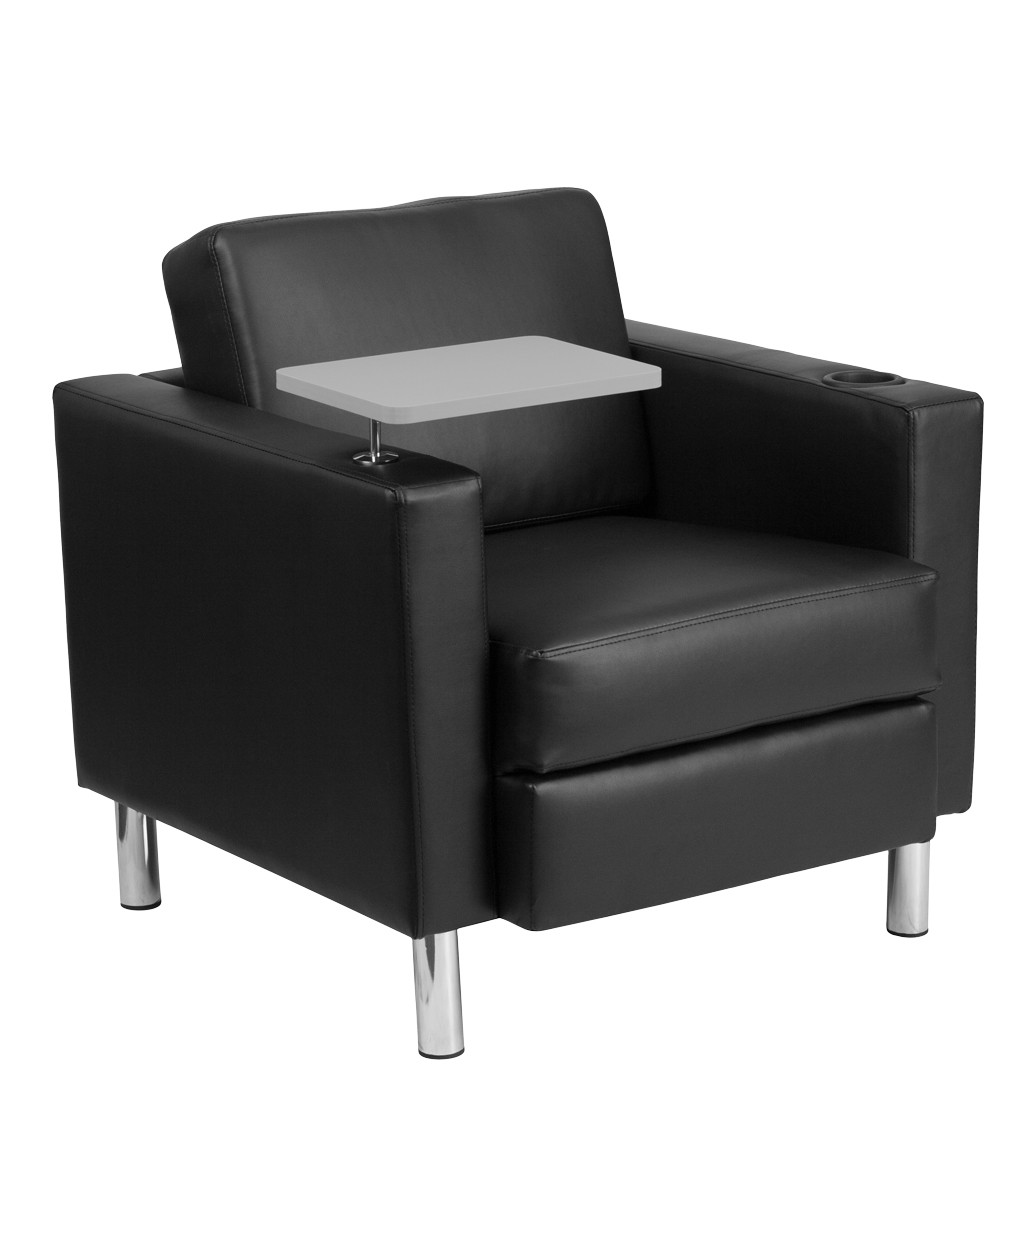 waiting chairs lounge chair patio furniture square leather with tablet arm description the